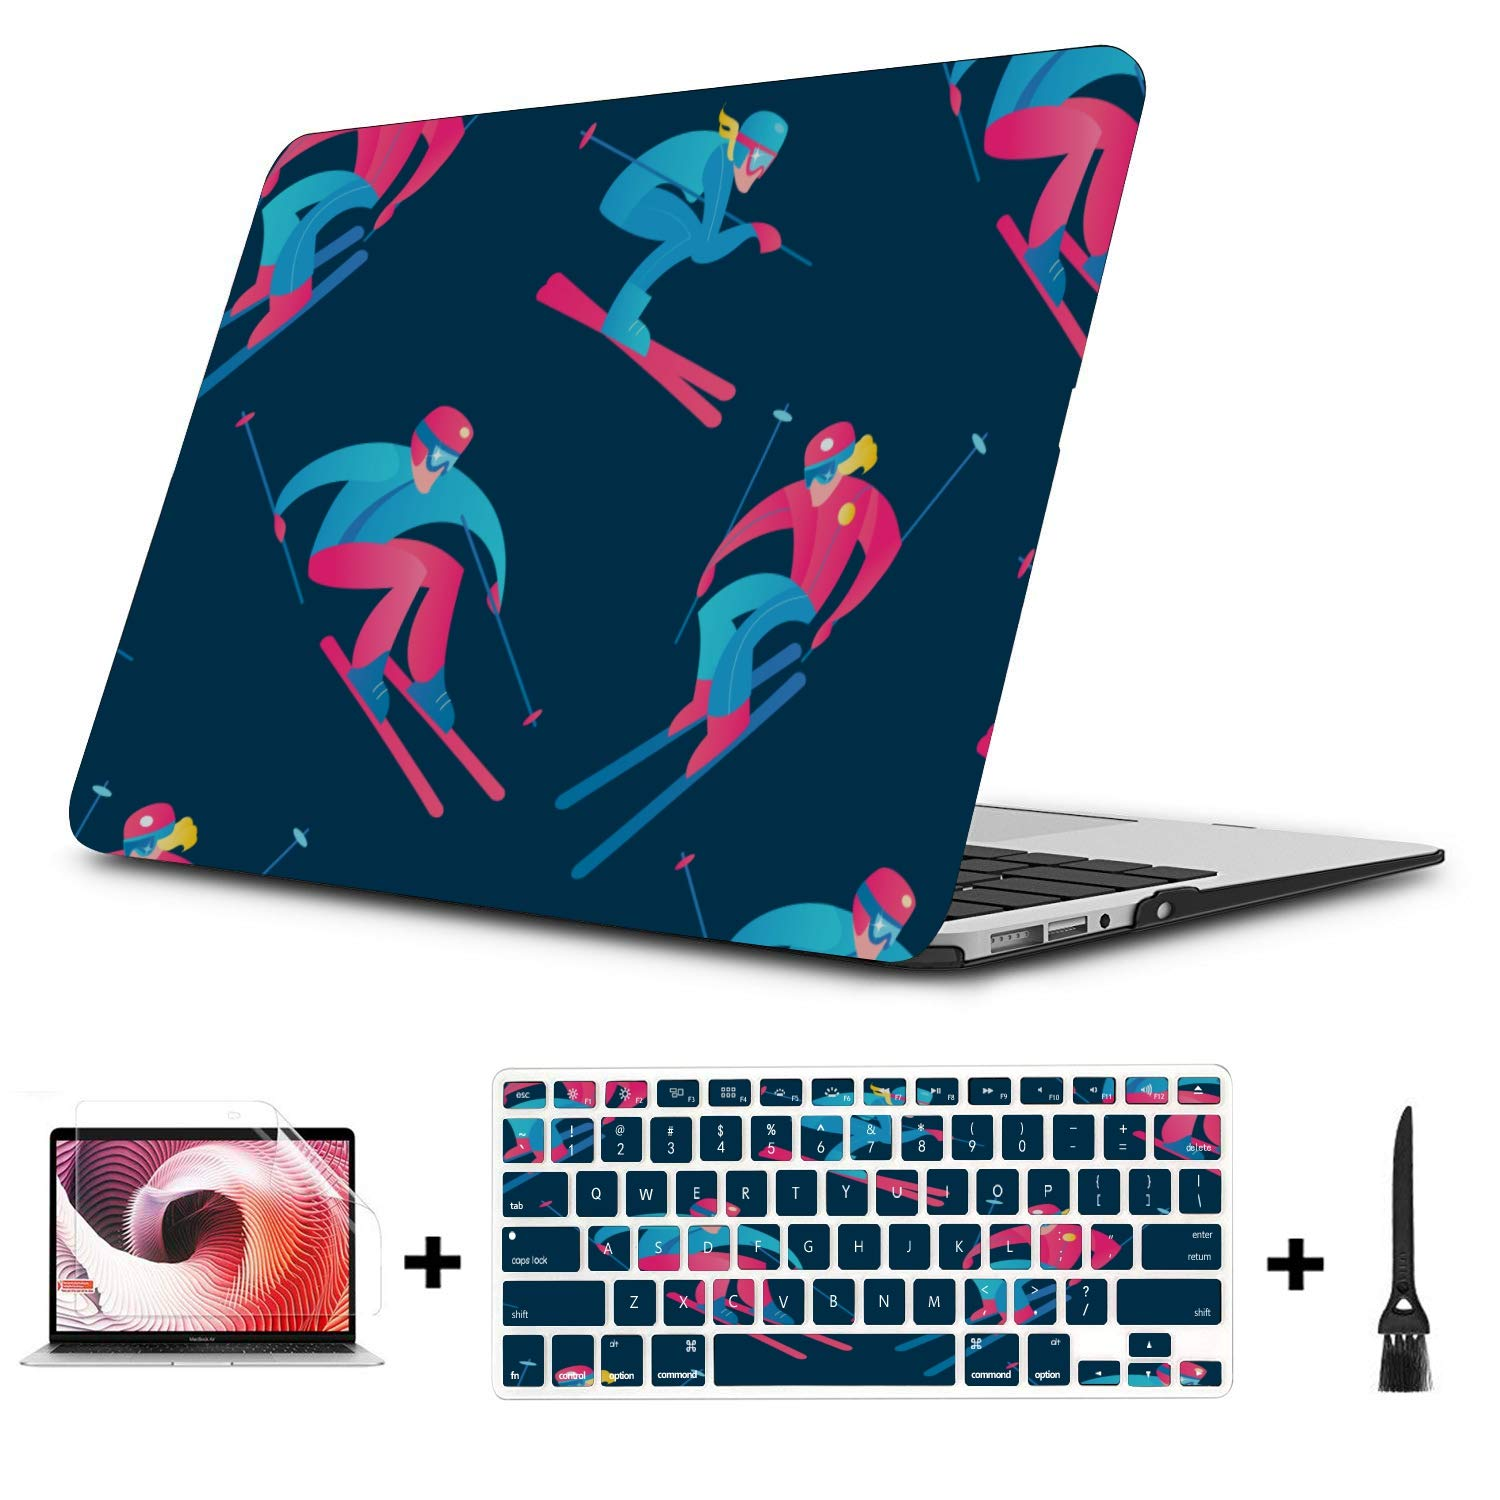 Mac Air Laptop Case Skiing Extreme Sports Entertainment Plastic Hard Shell Compatible Mac Air 11 Pro 13 15 MacBook Air Protective Case Protection for MacBook 2016-2019 Version